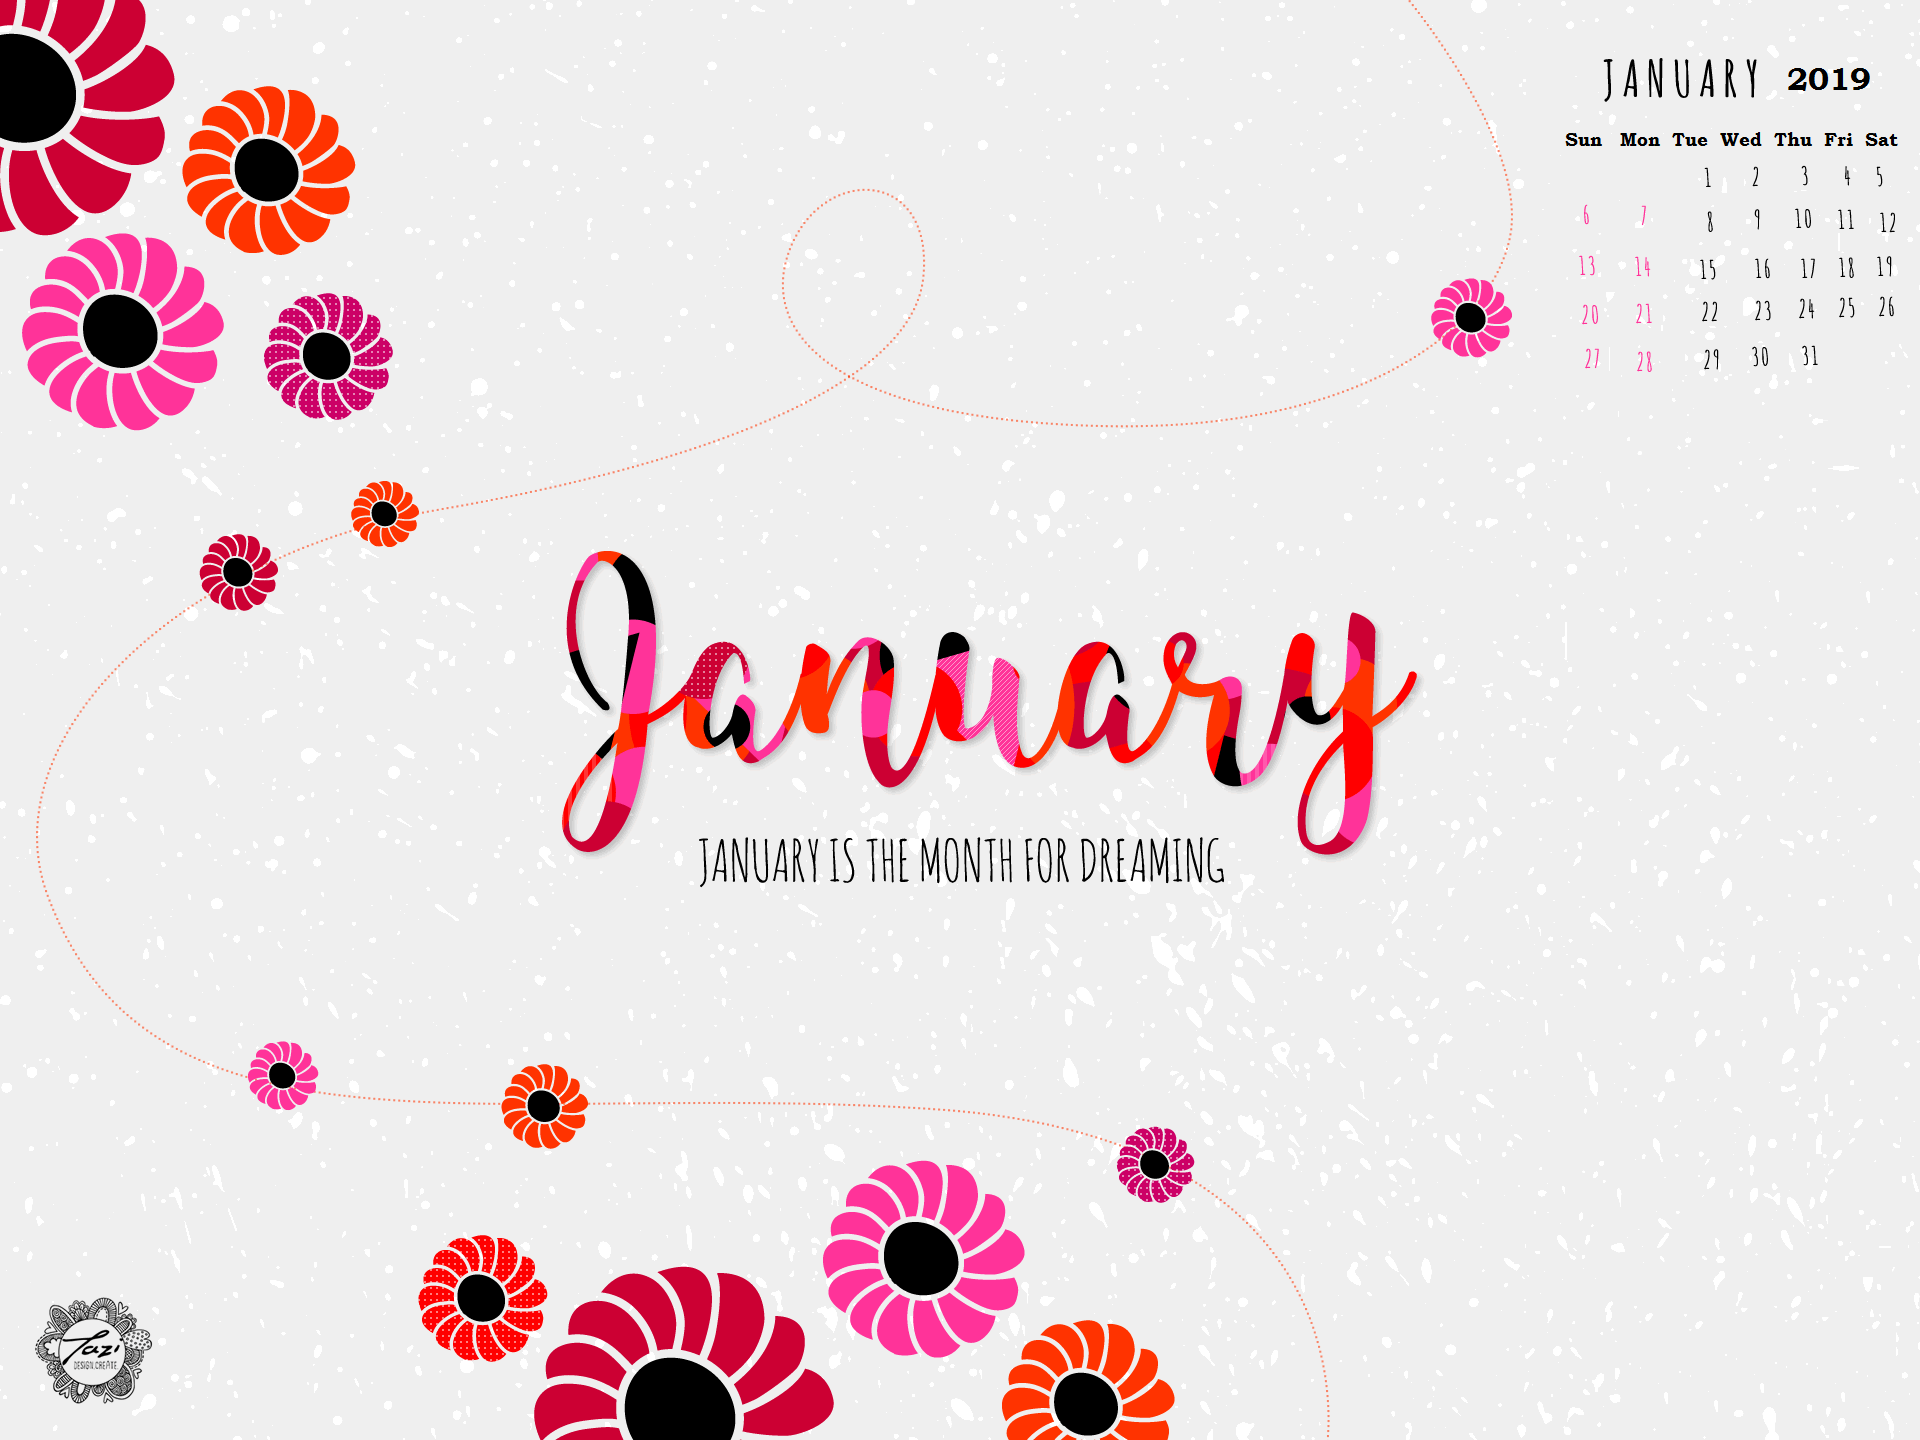 January 2019 HD Calendar Wallpapers Calendar wallpaper